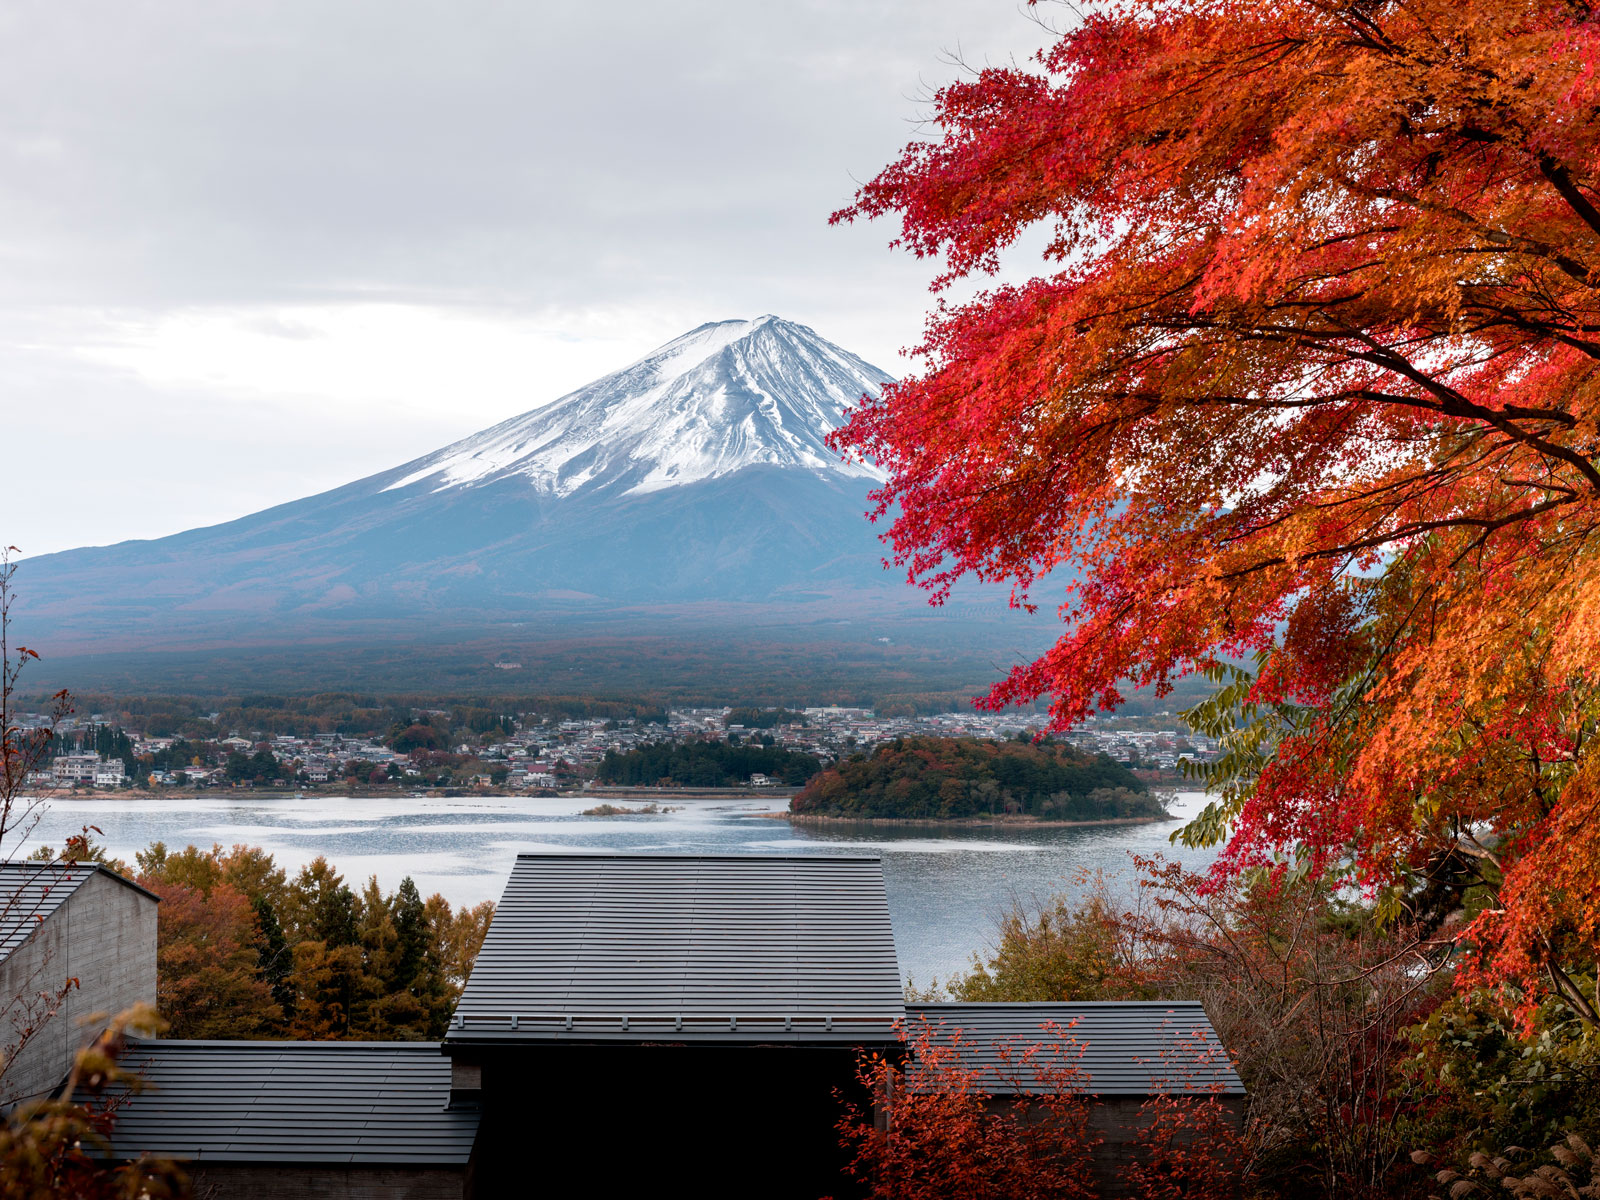 Mt. Fuji View in Autumn